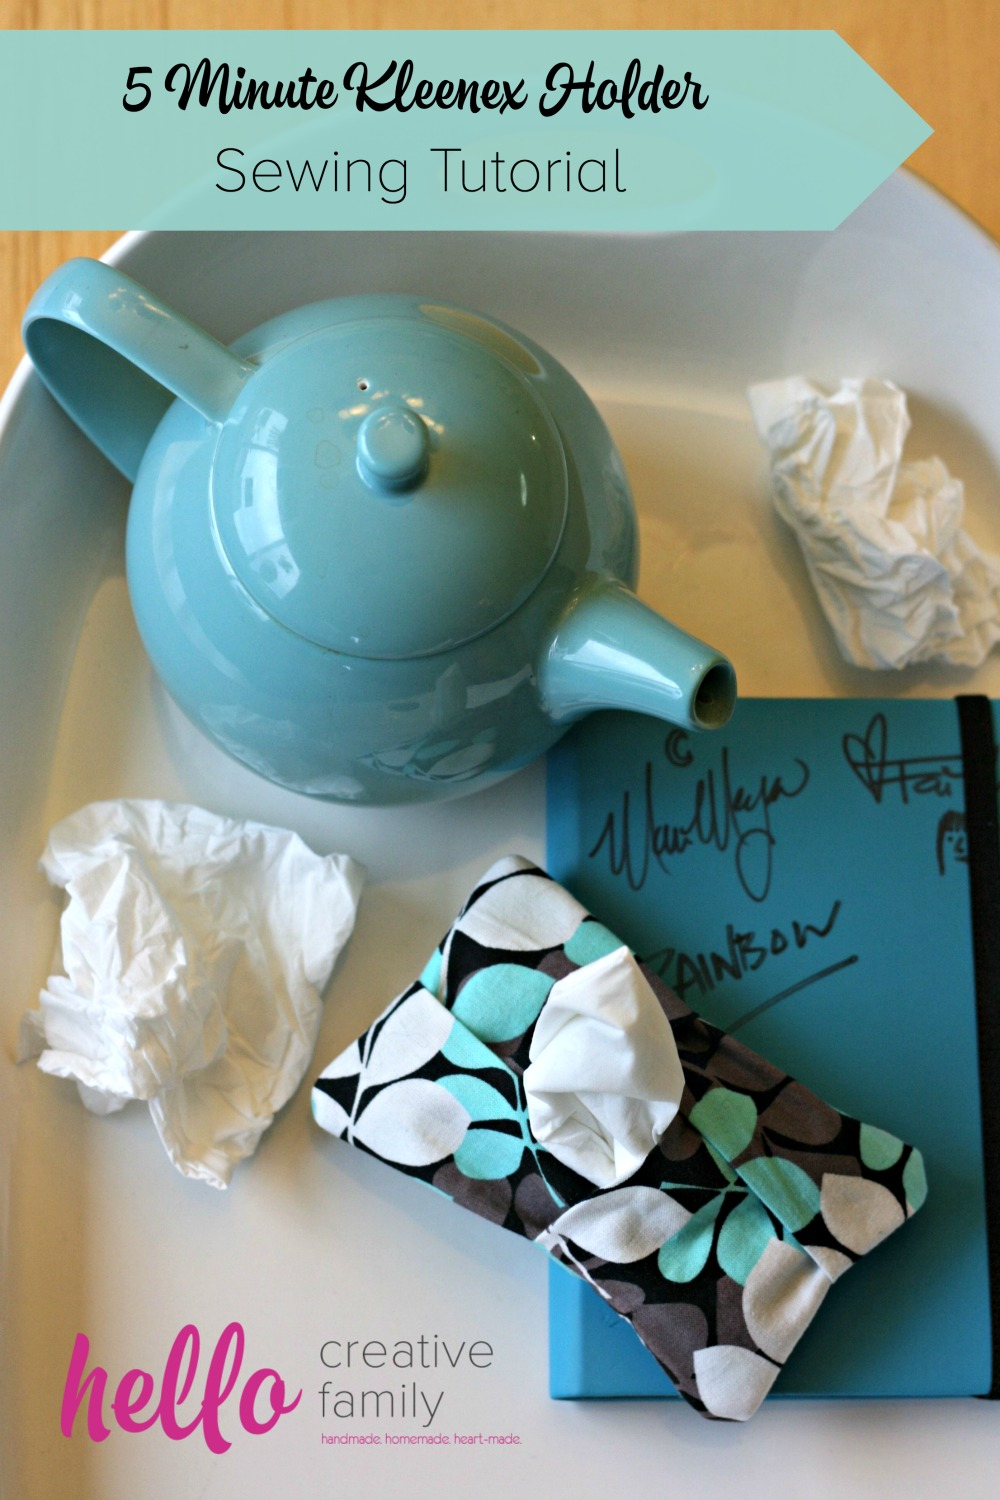 This 5 Minute Tissue:Kleenex Holder is a simple sewing projects for beginners. Whip them up for your kids, teachers and friends during cold and flu season. Perfect for stocking stuffers.